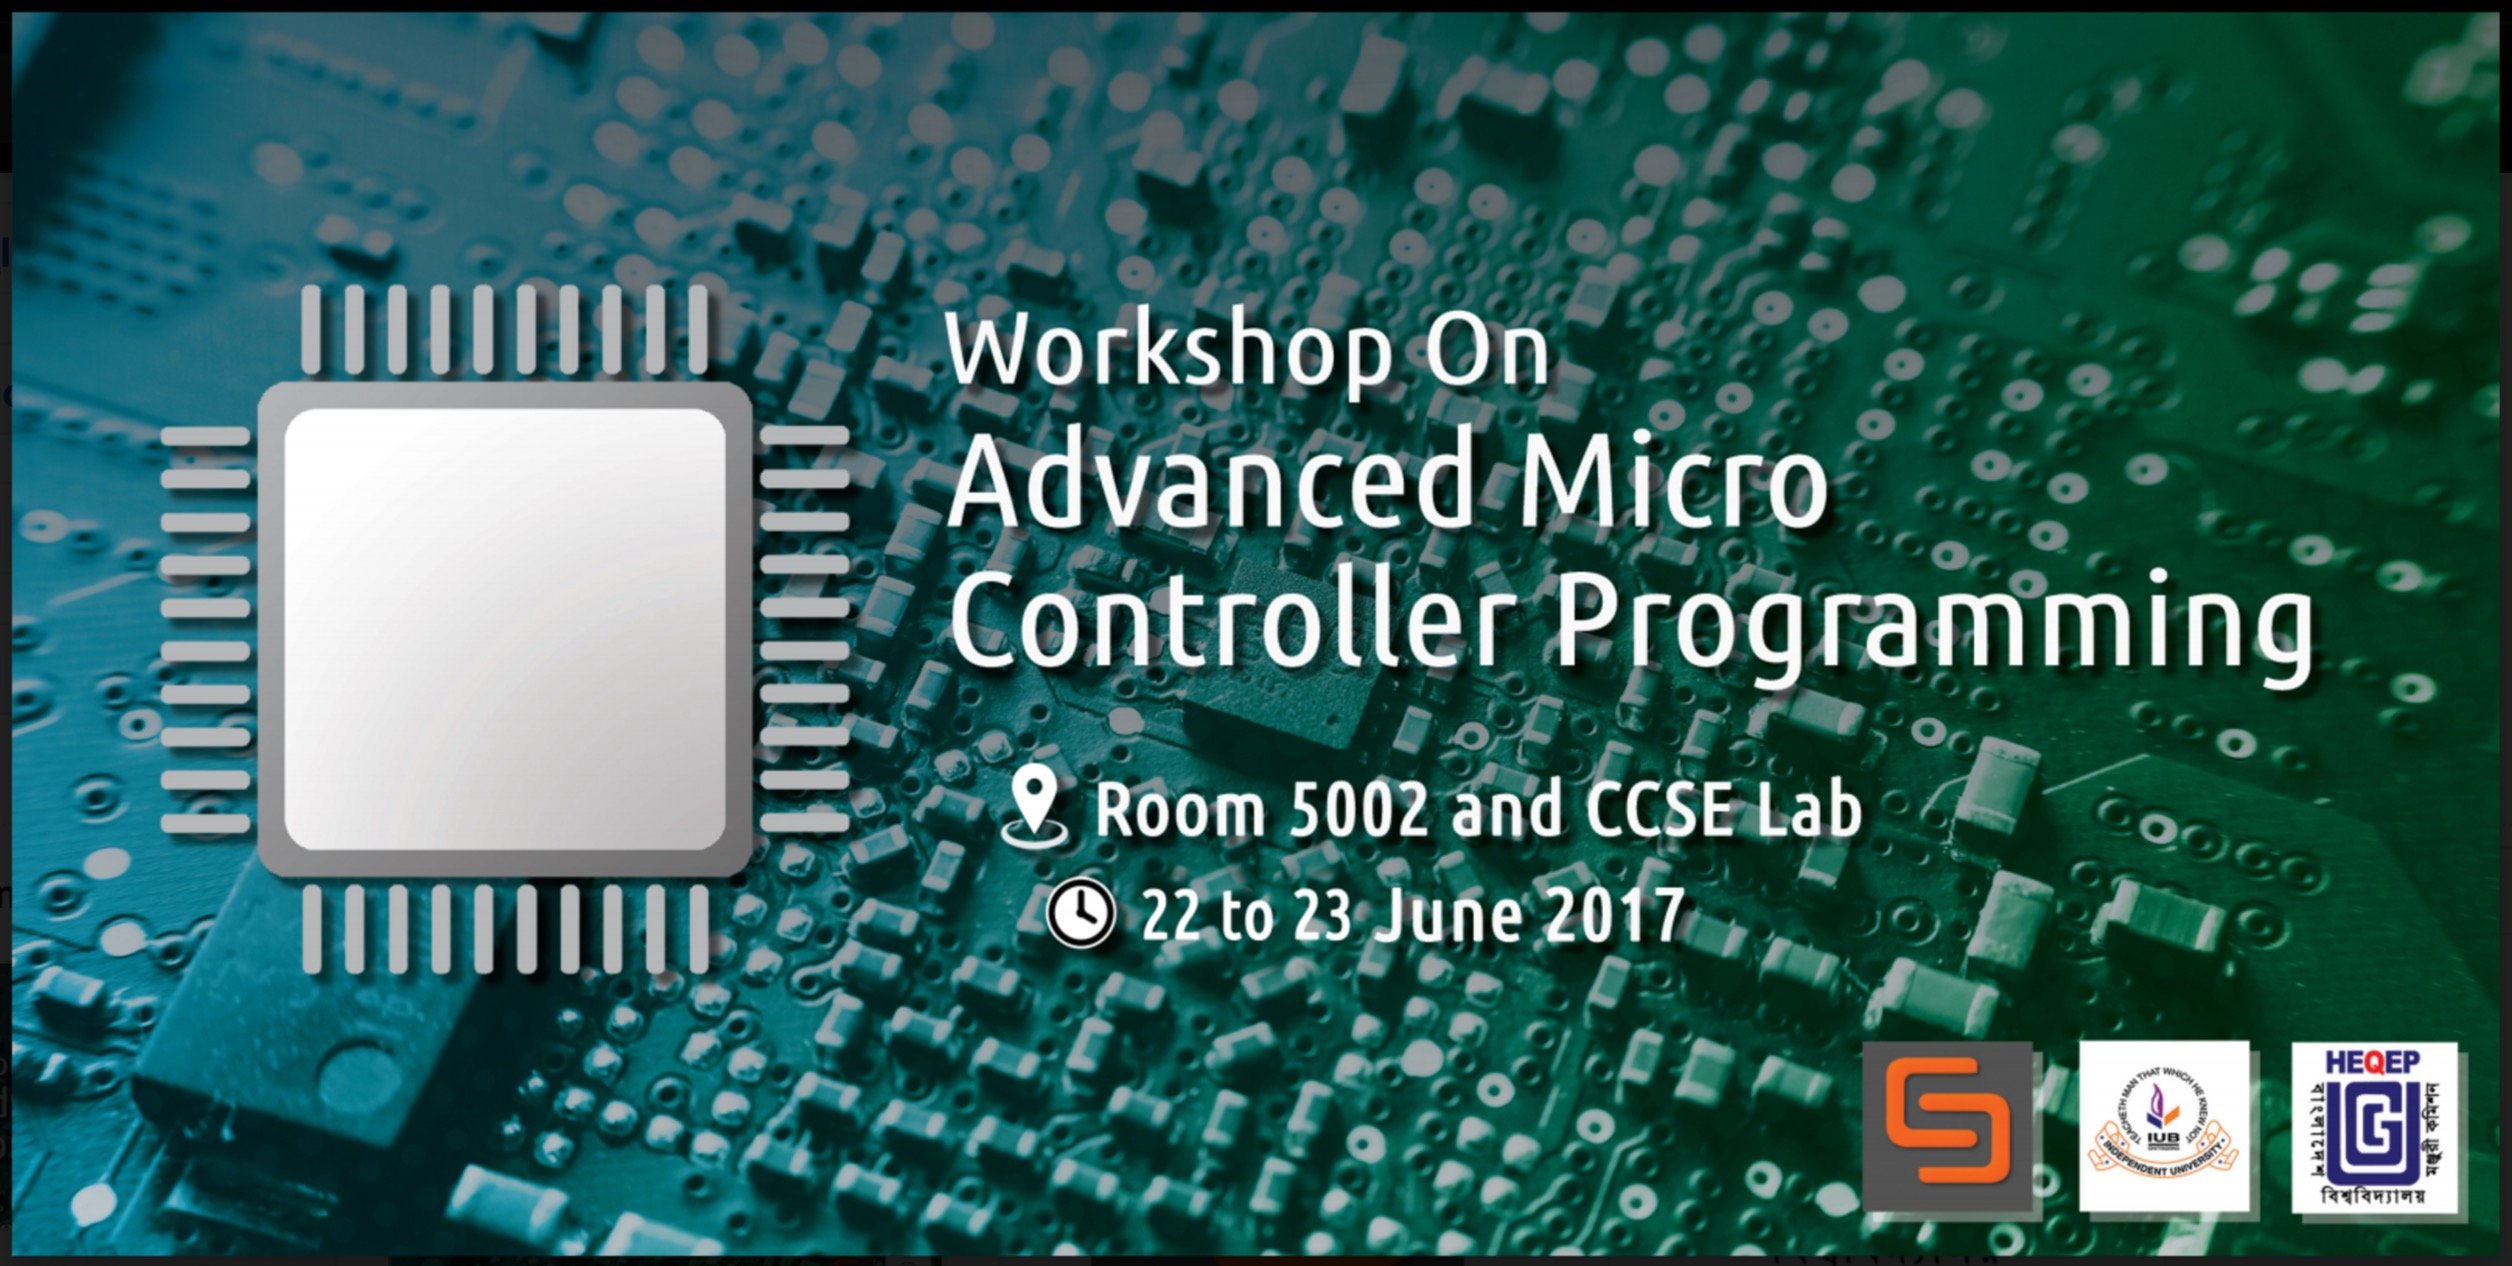 Workshop on Advanced Micro Controller Programming